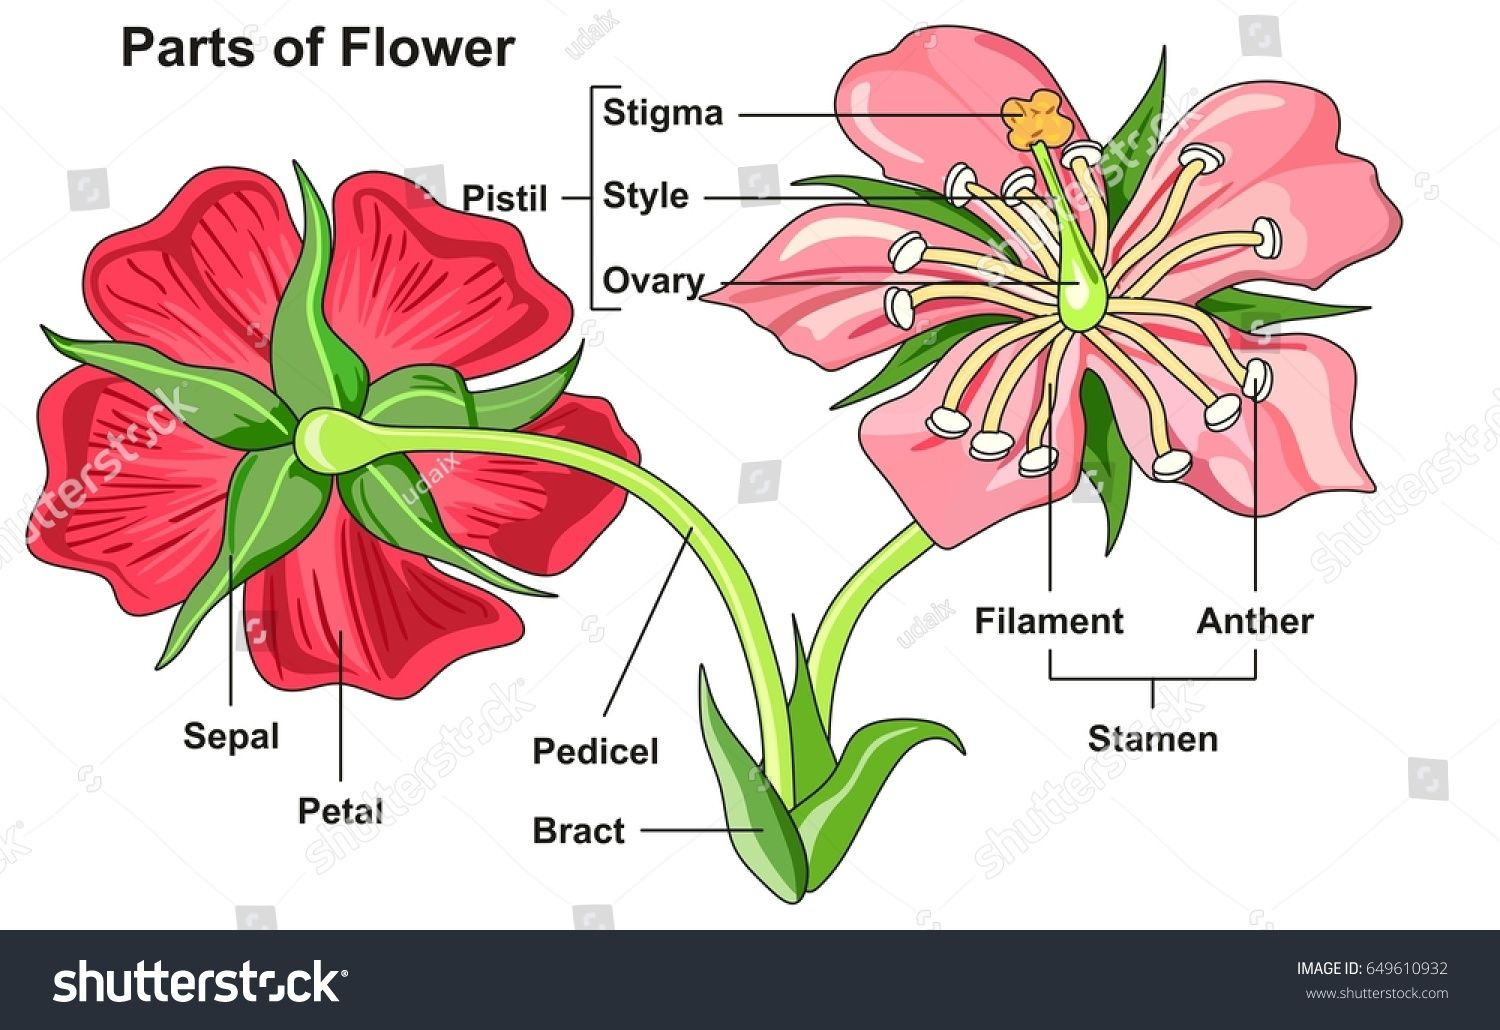 Flower Parts Diagram front and back view with all parts